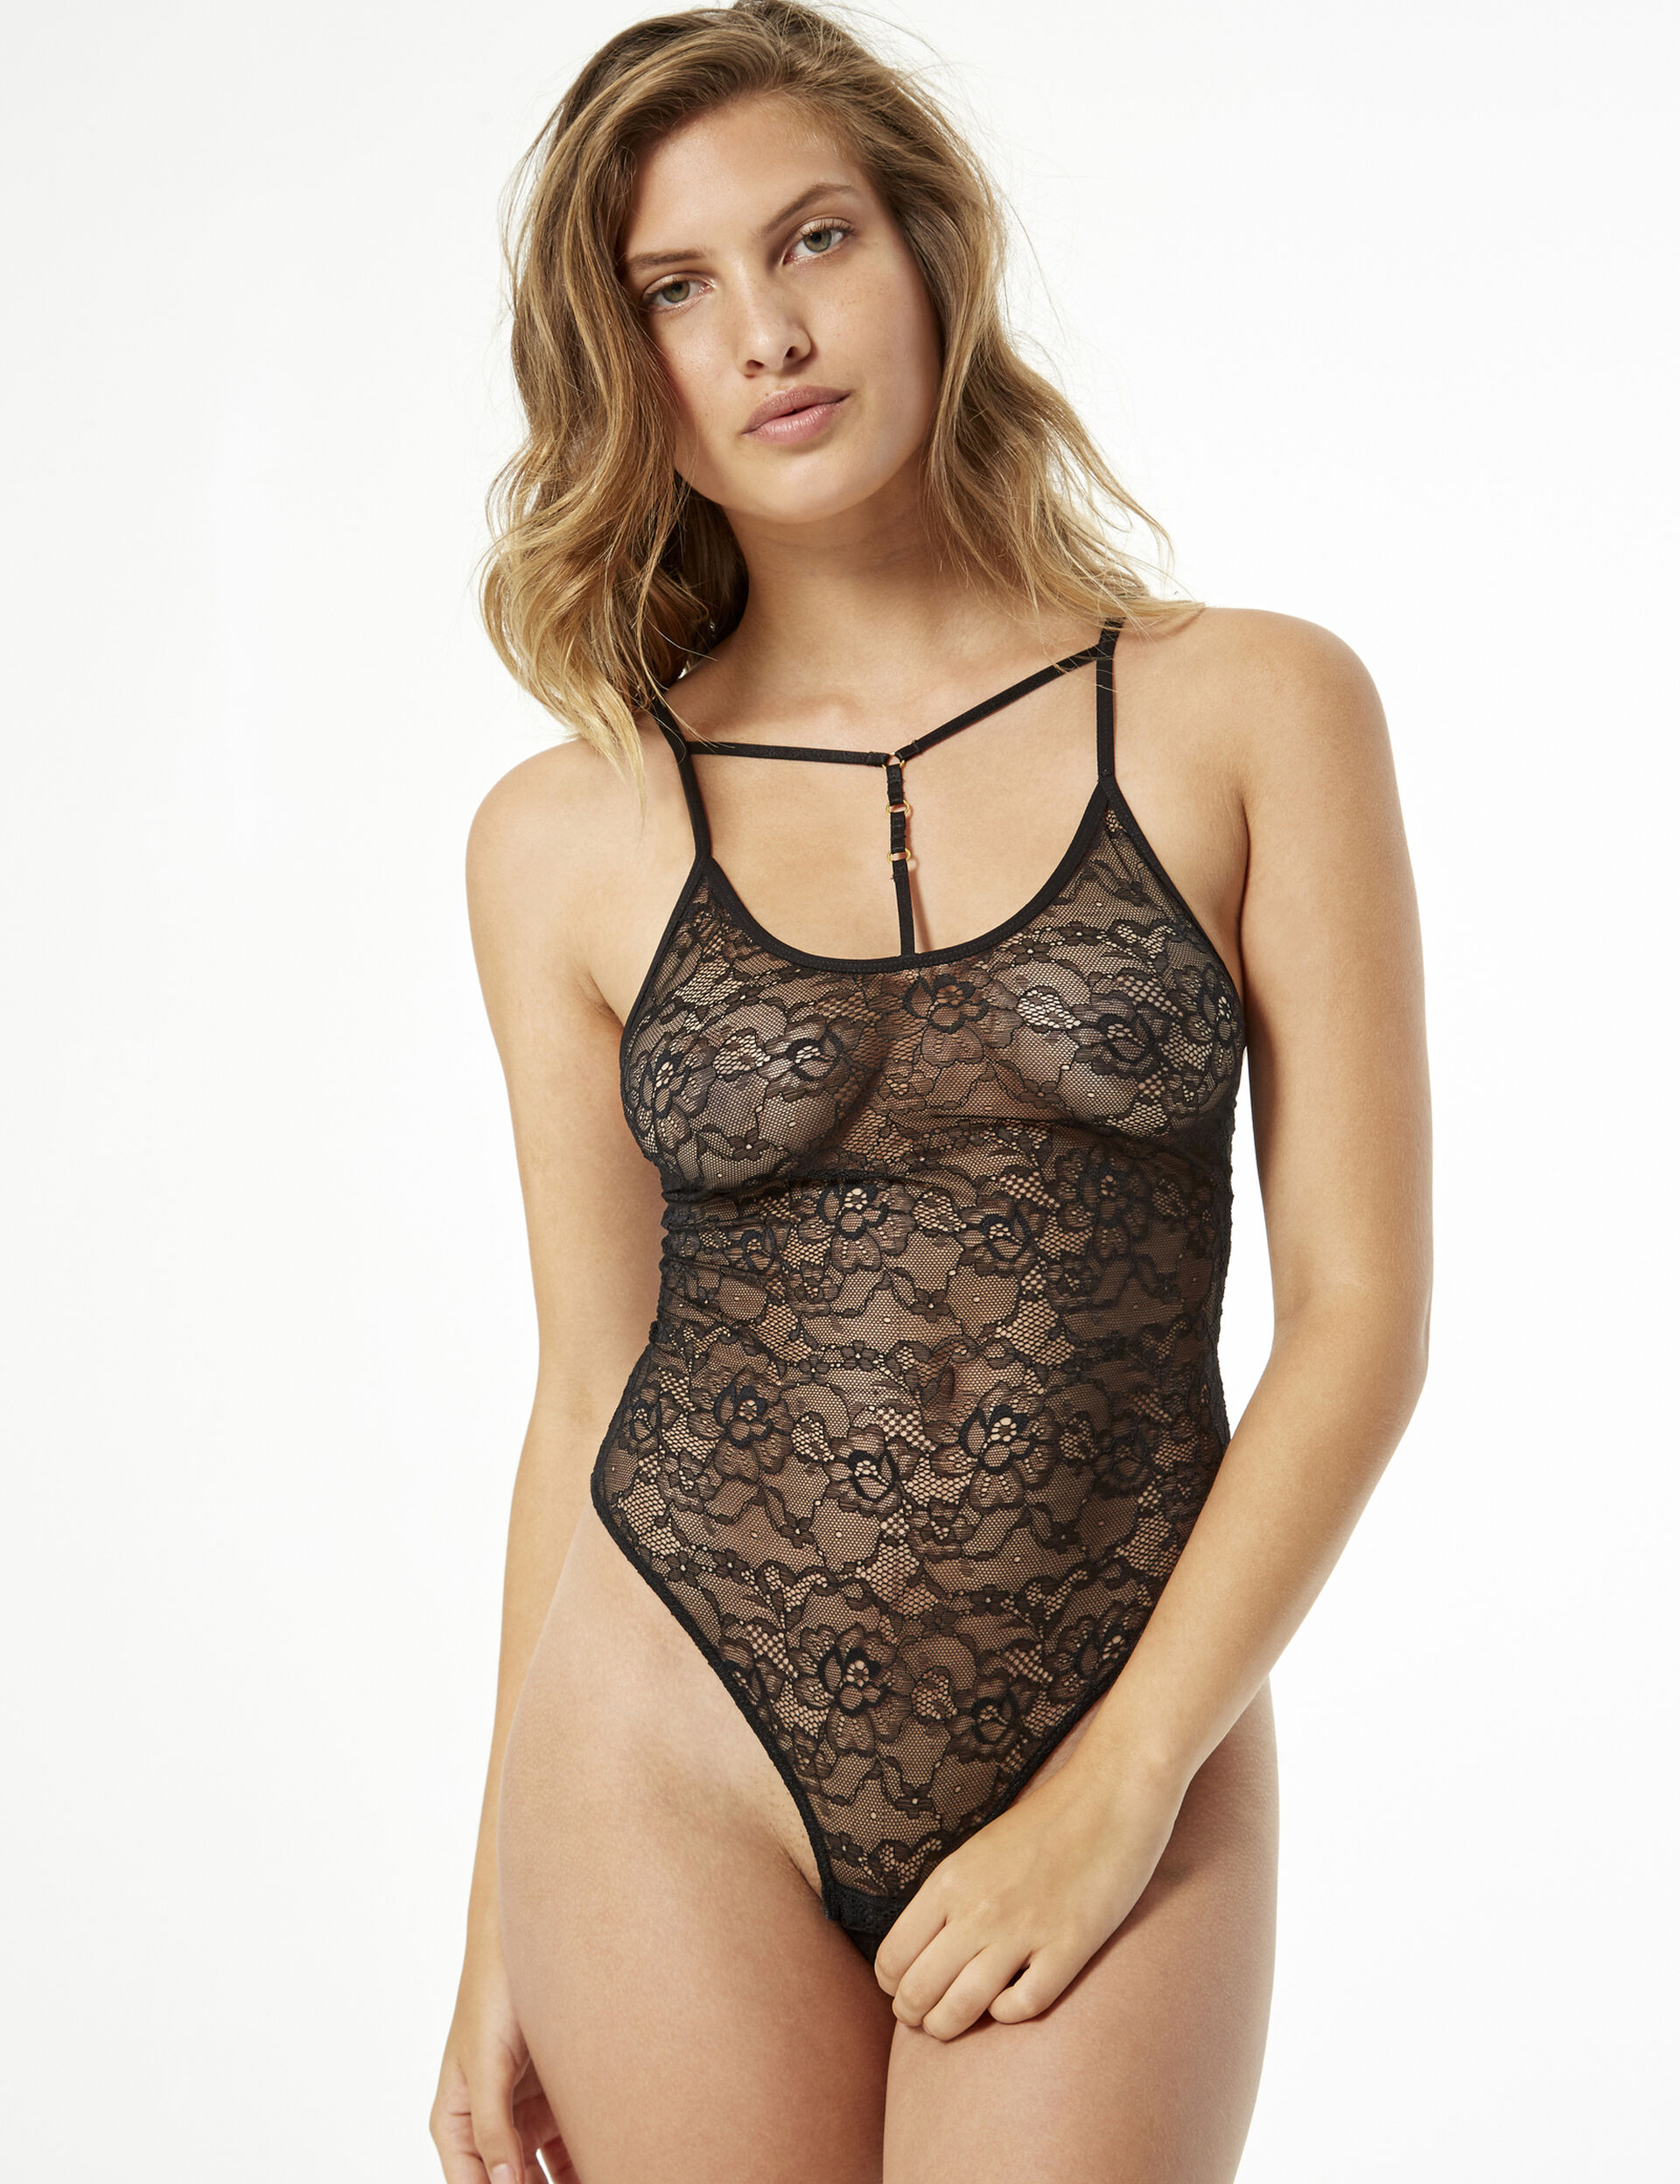 Lace bodysuit with strap detail